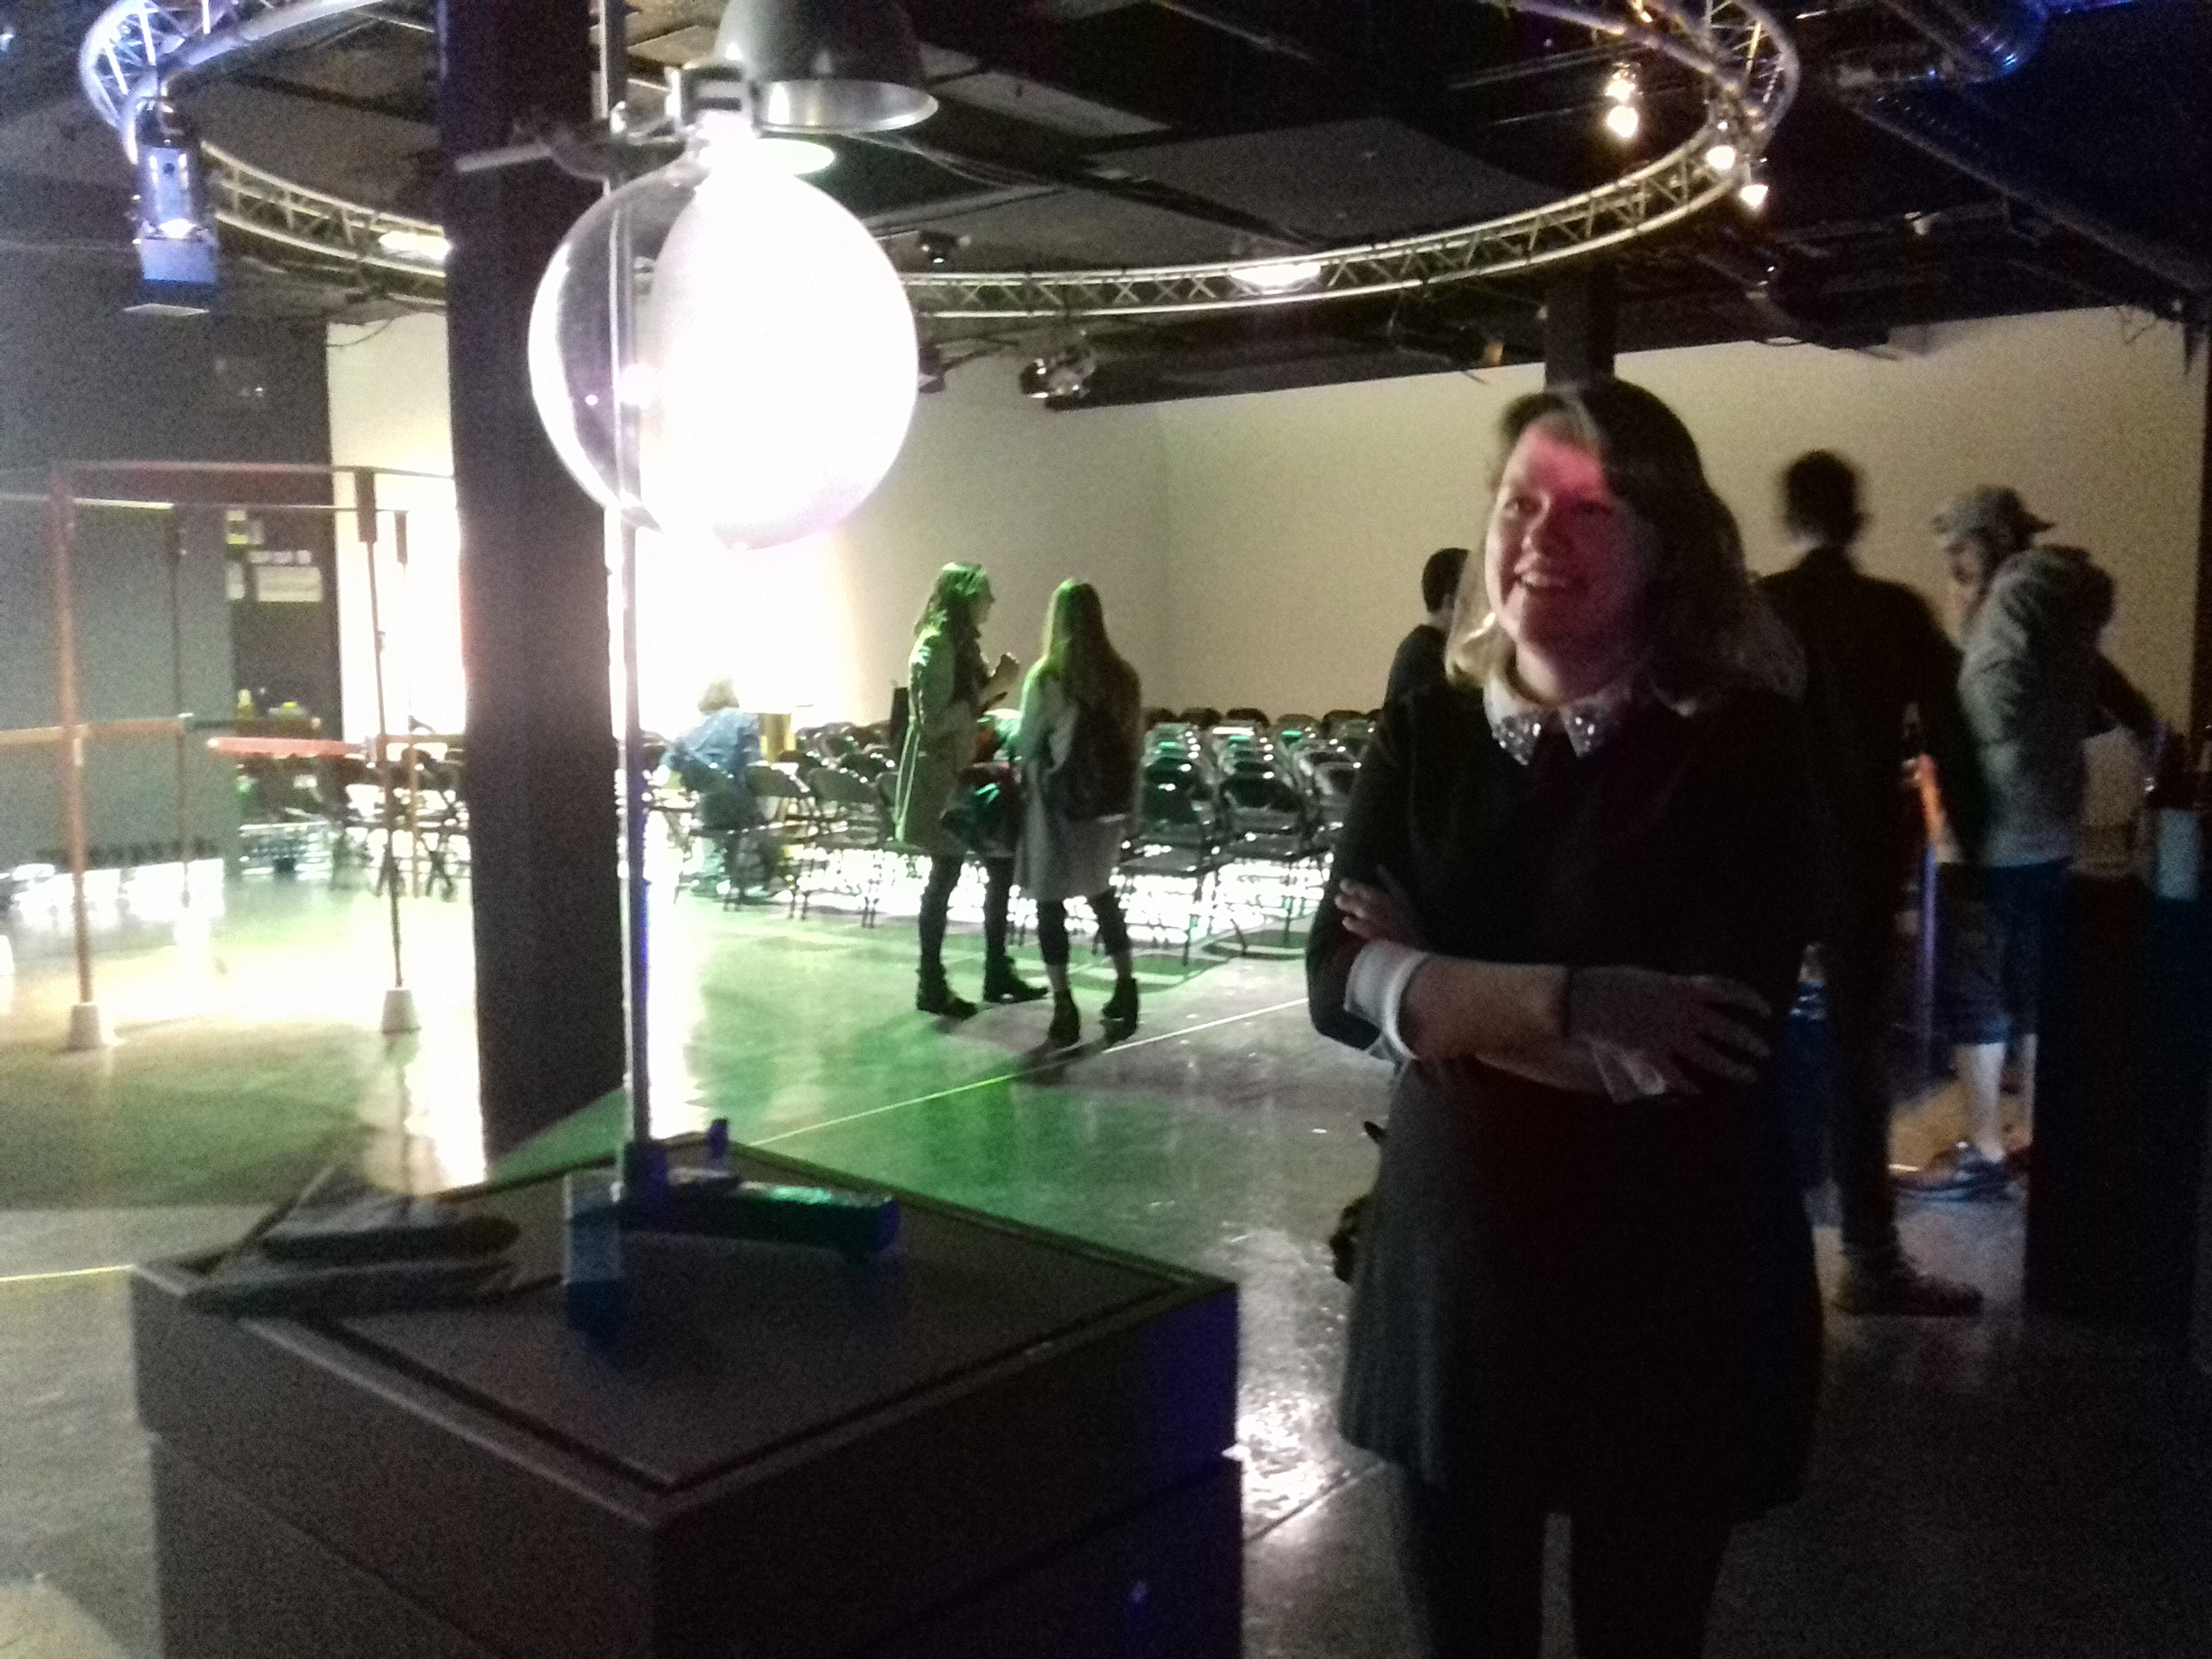 UCL dementia research Selina Wray watches her lab in action on Charlie Murphy's 'skin to mind' video installation. Image: Charlie Murphy/Created Out of Mind.